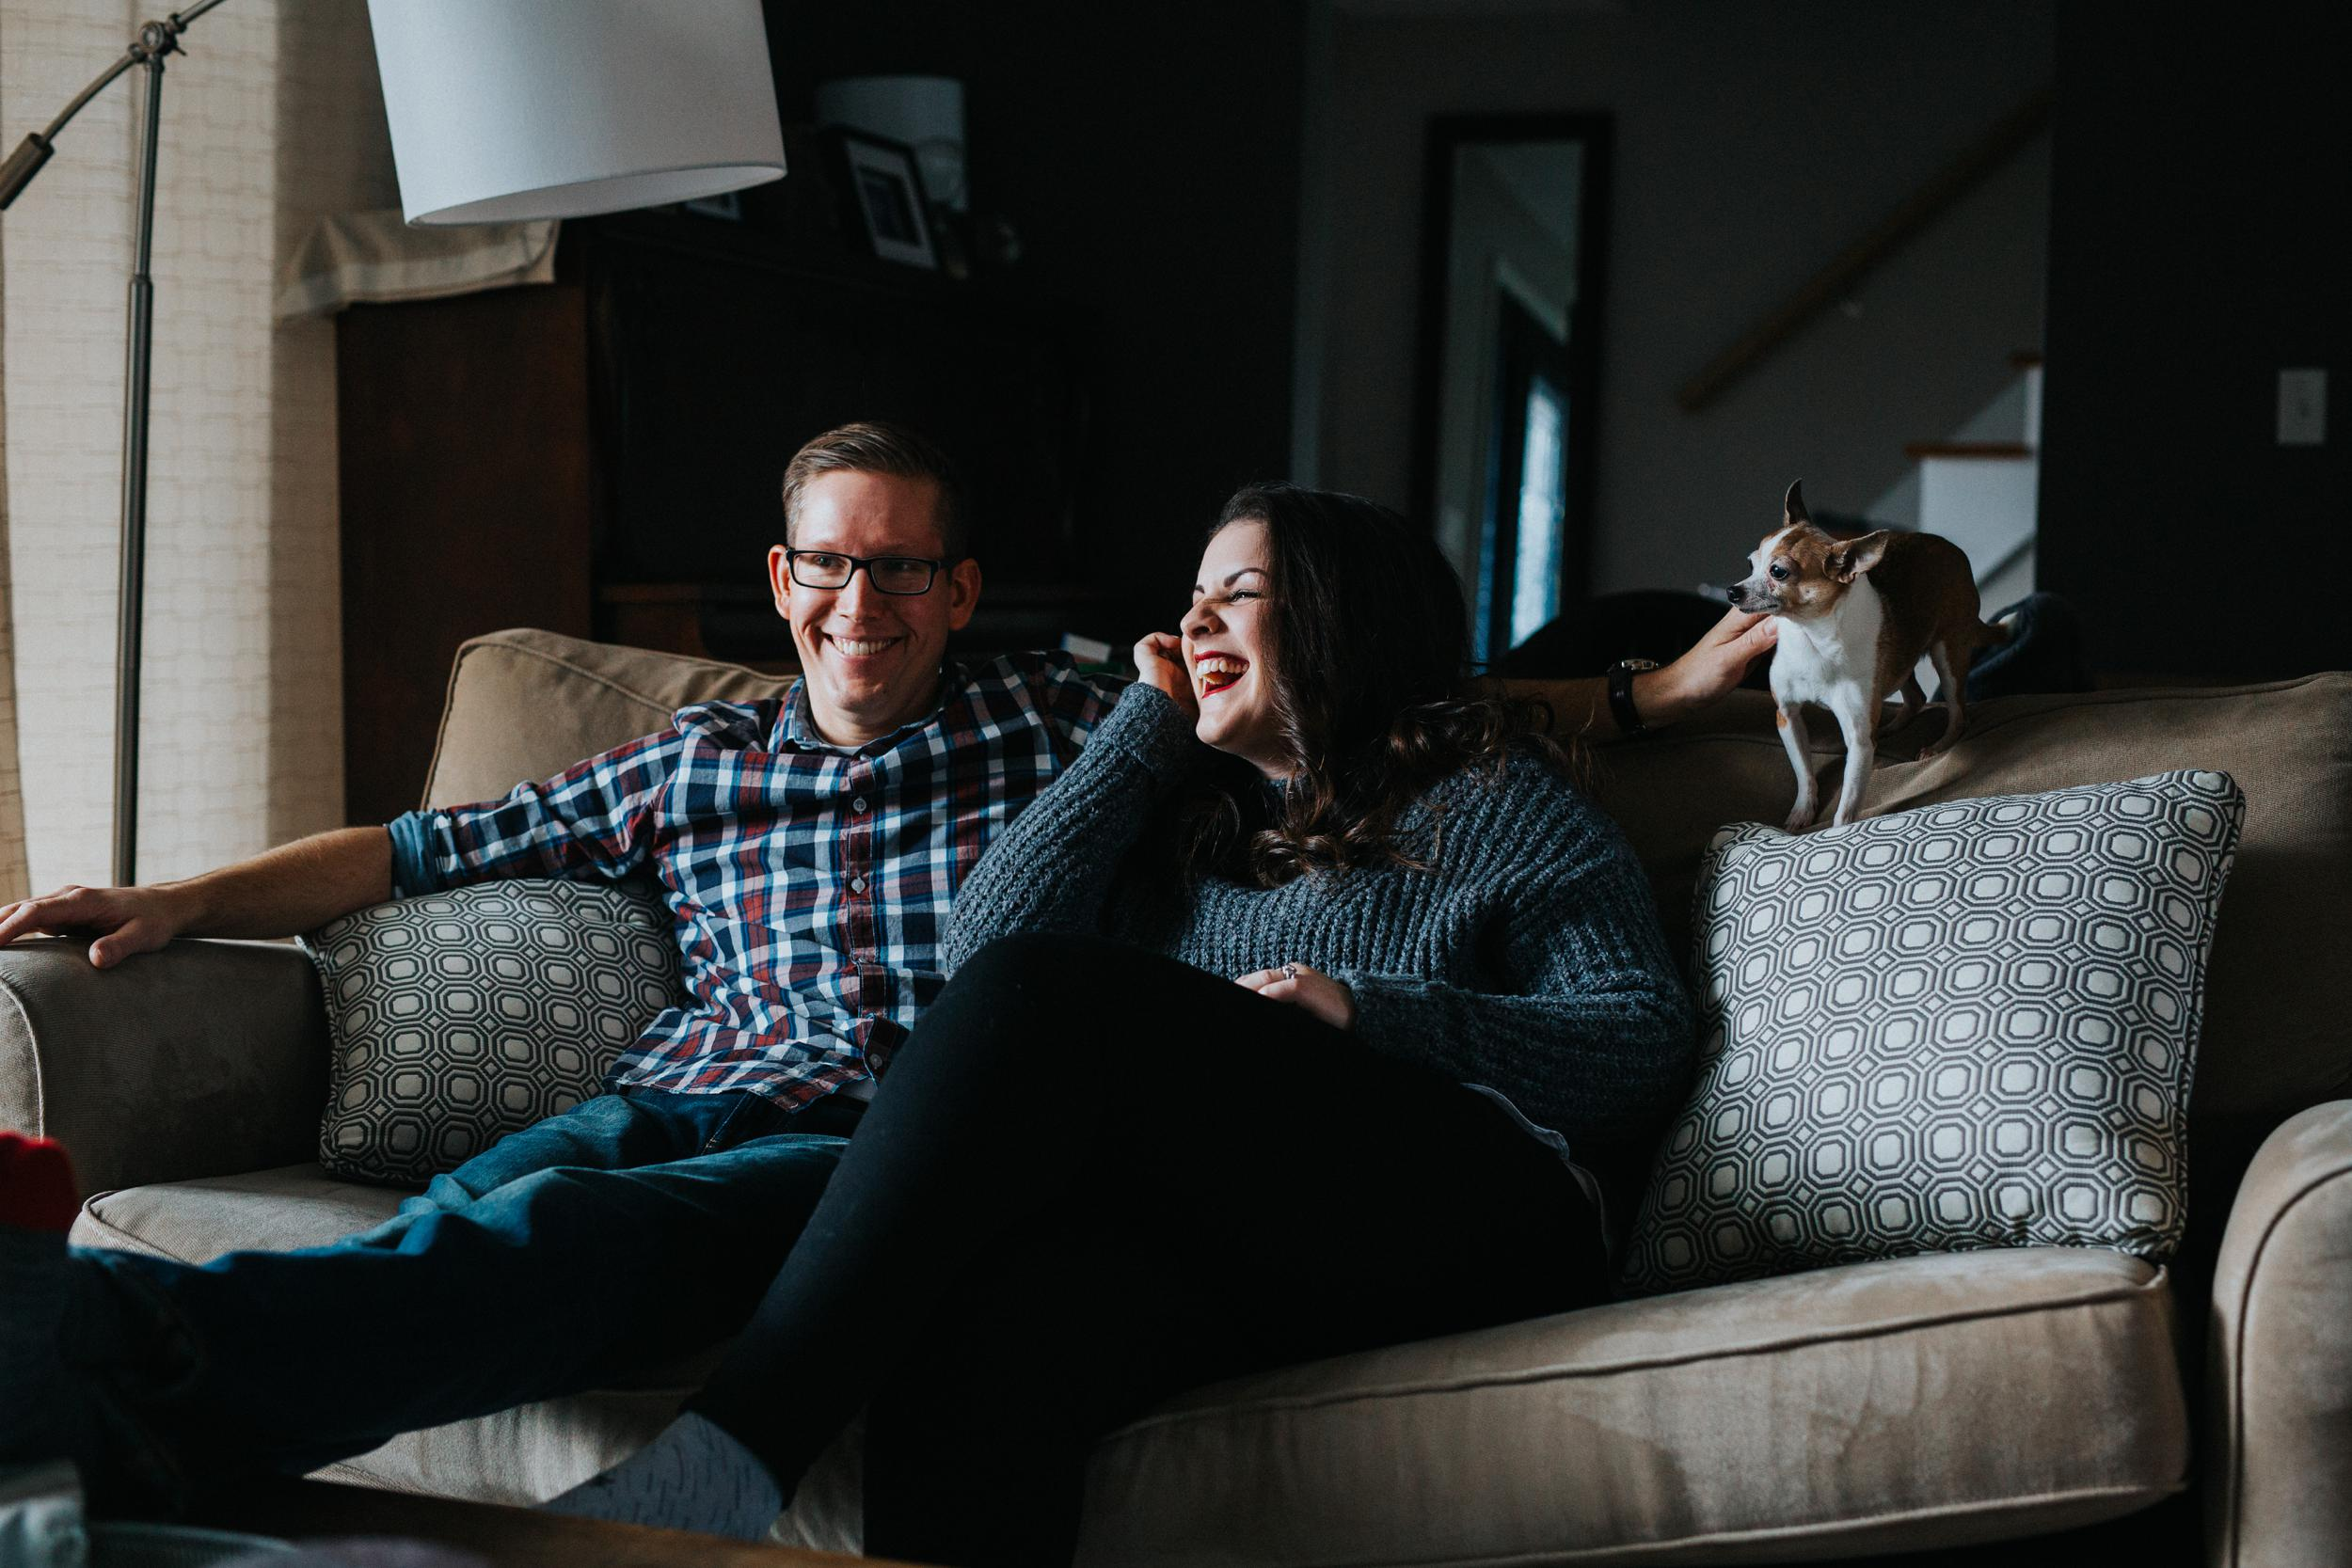 Laugh often, and watch all the Netflix together | Cambridge Winter Engagement